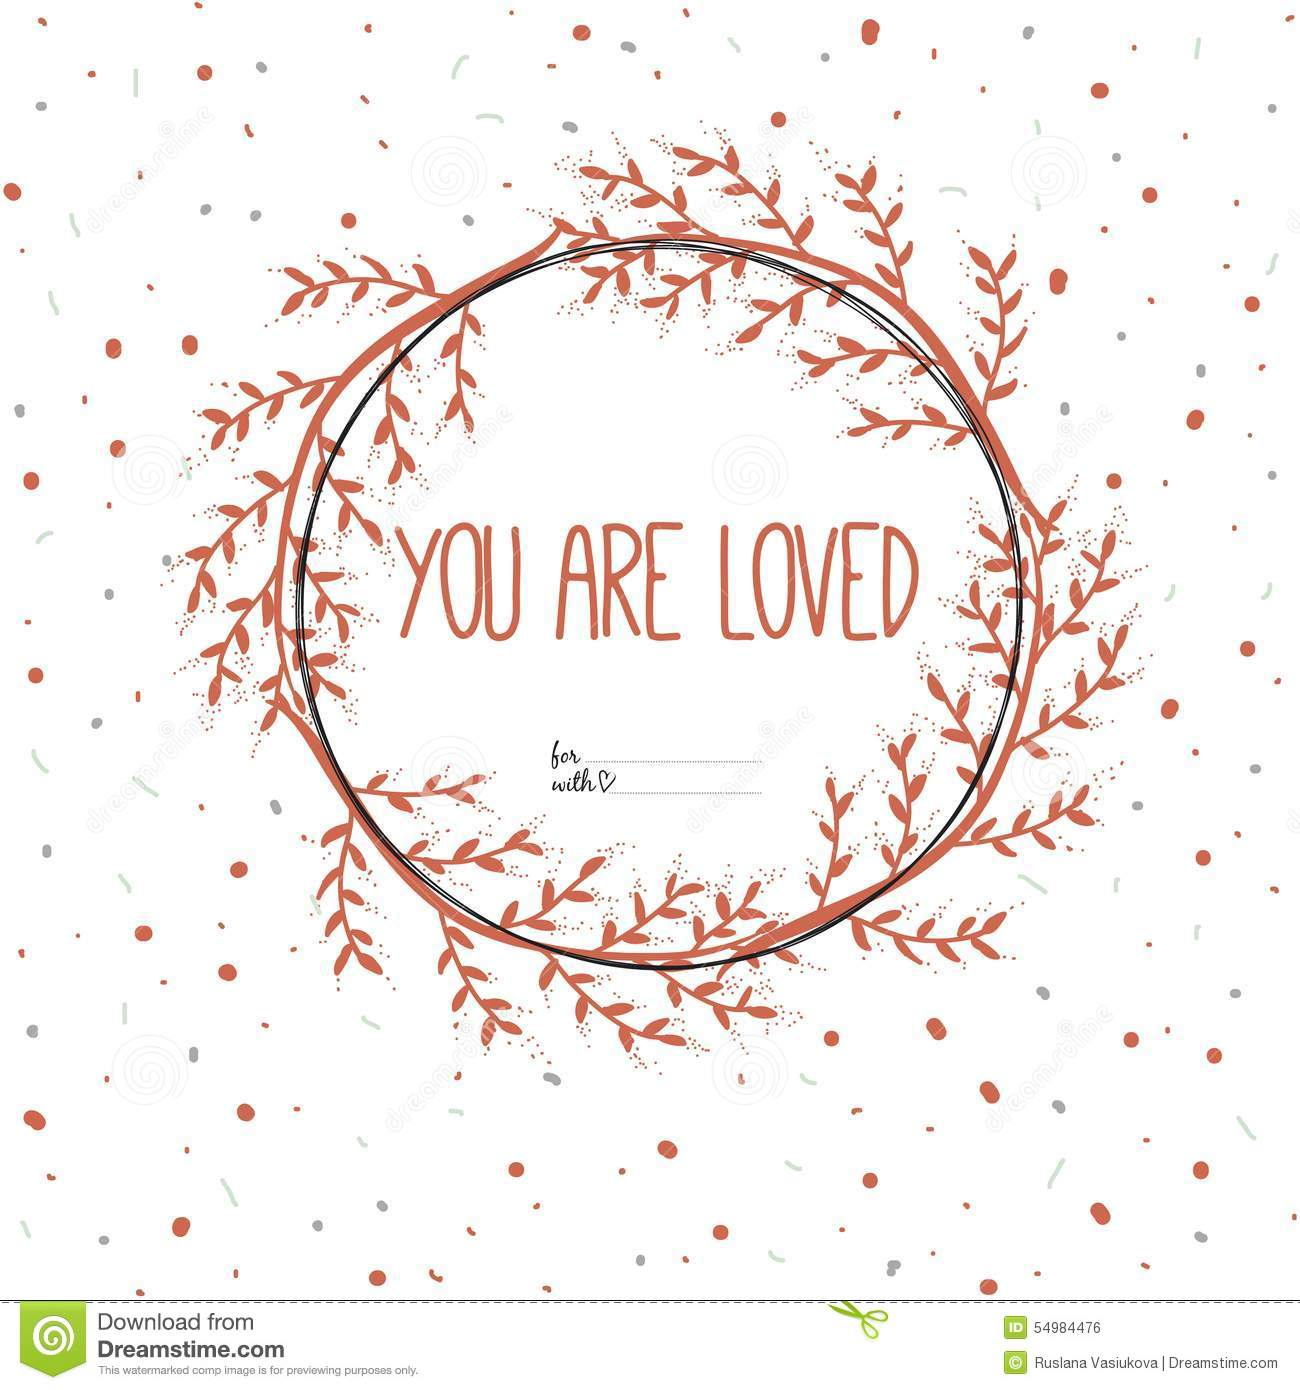 You Are Loved Quotes: Inspirational Romantic Quote Card. You Are Loved Stock